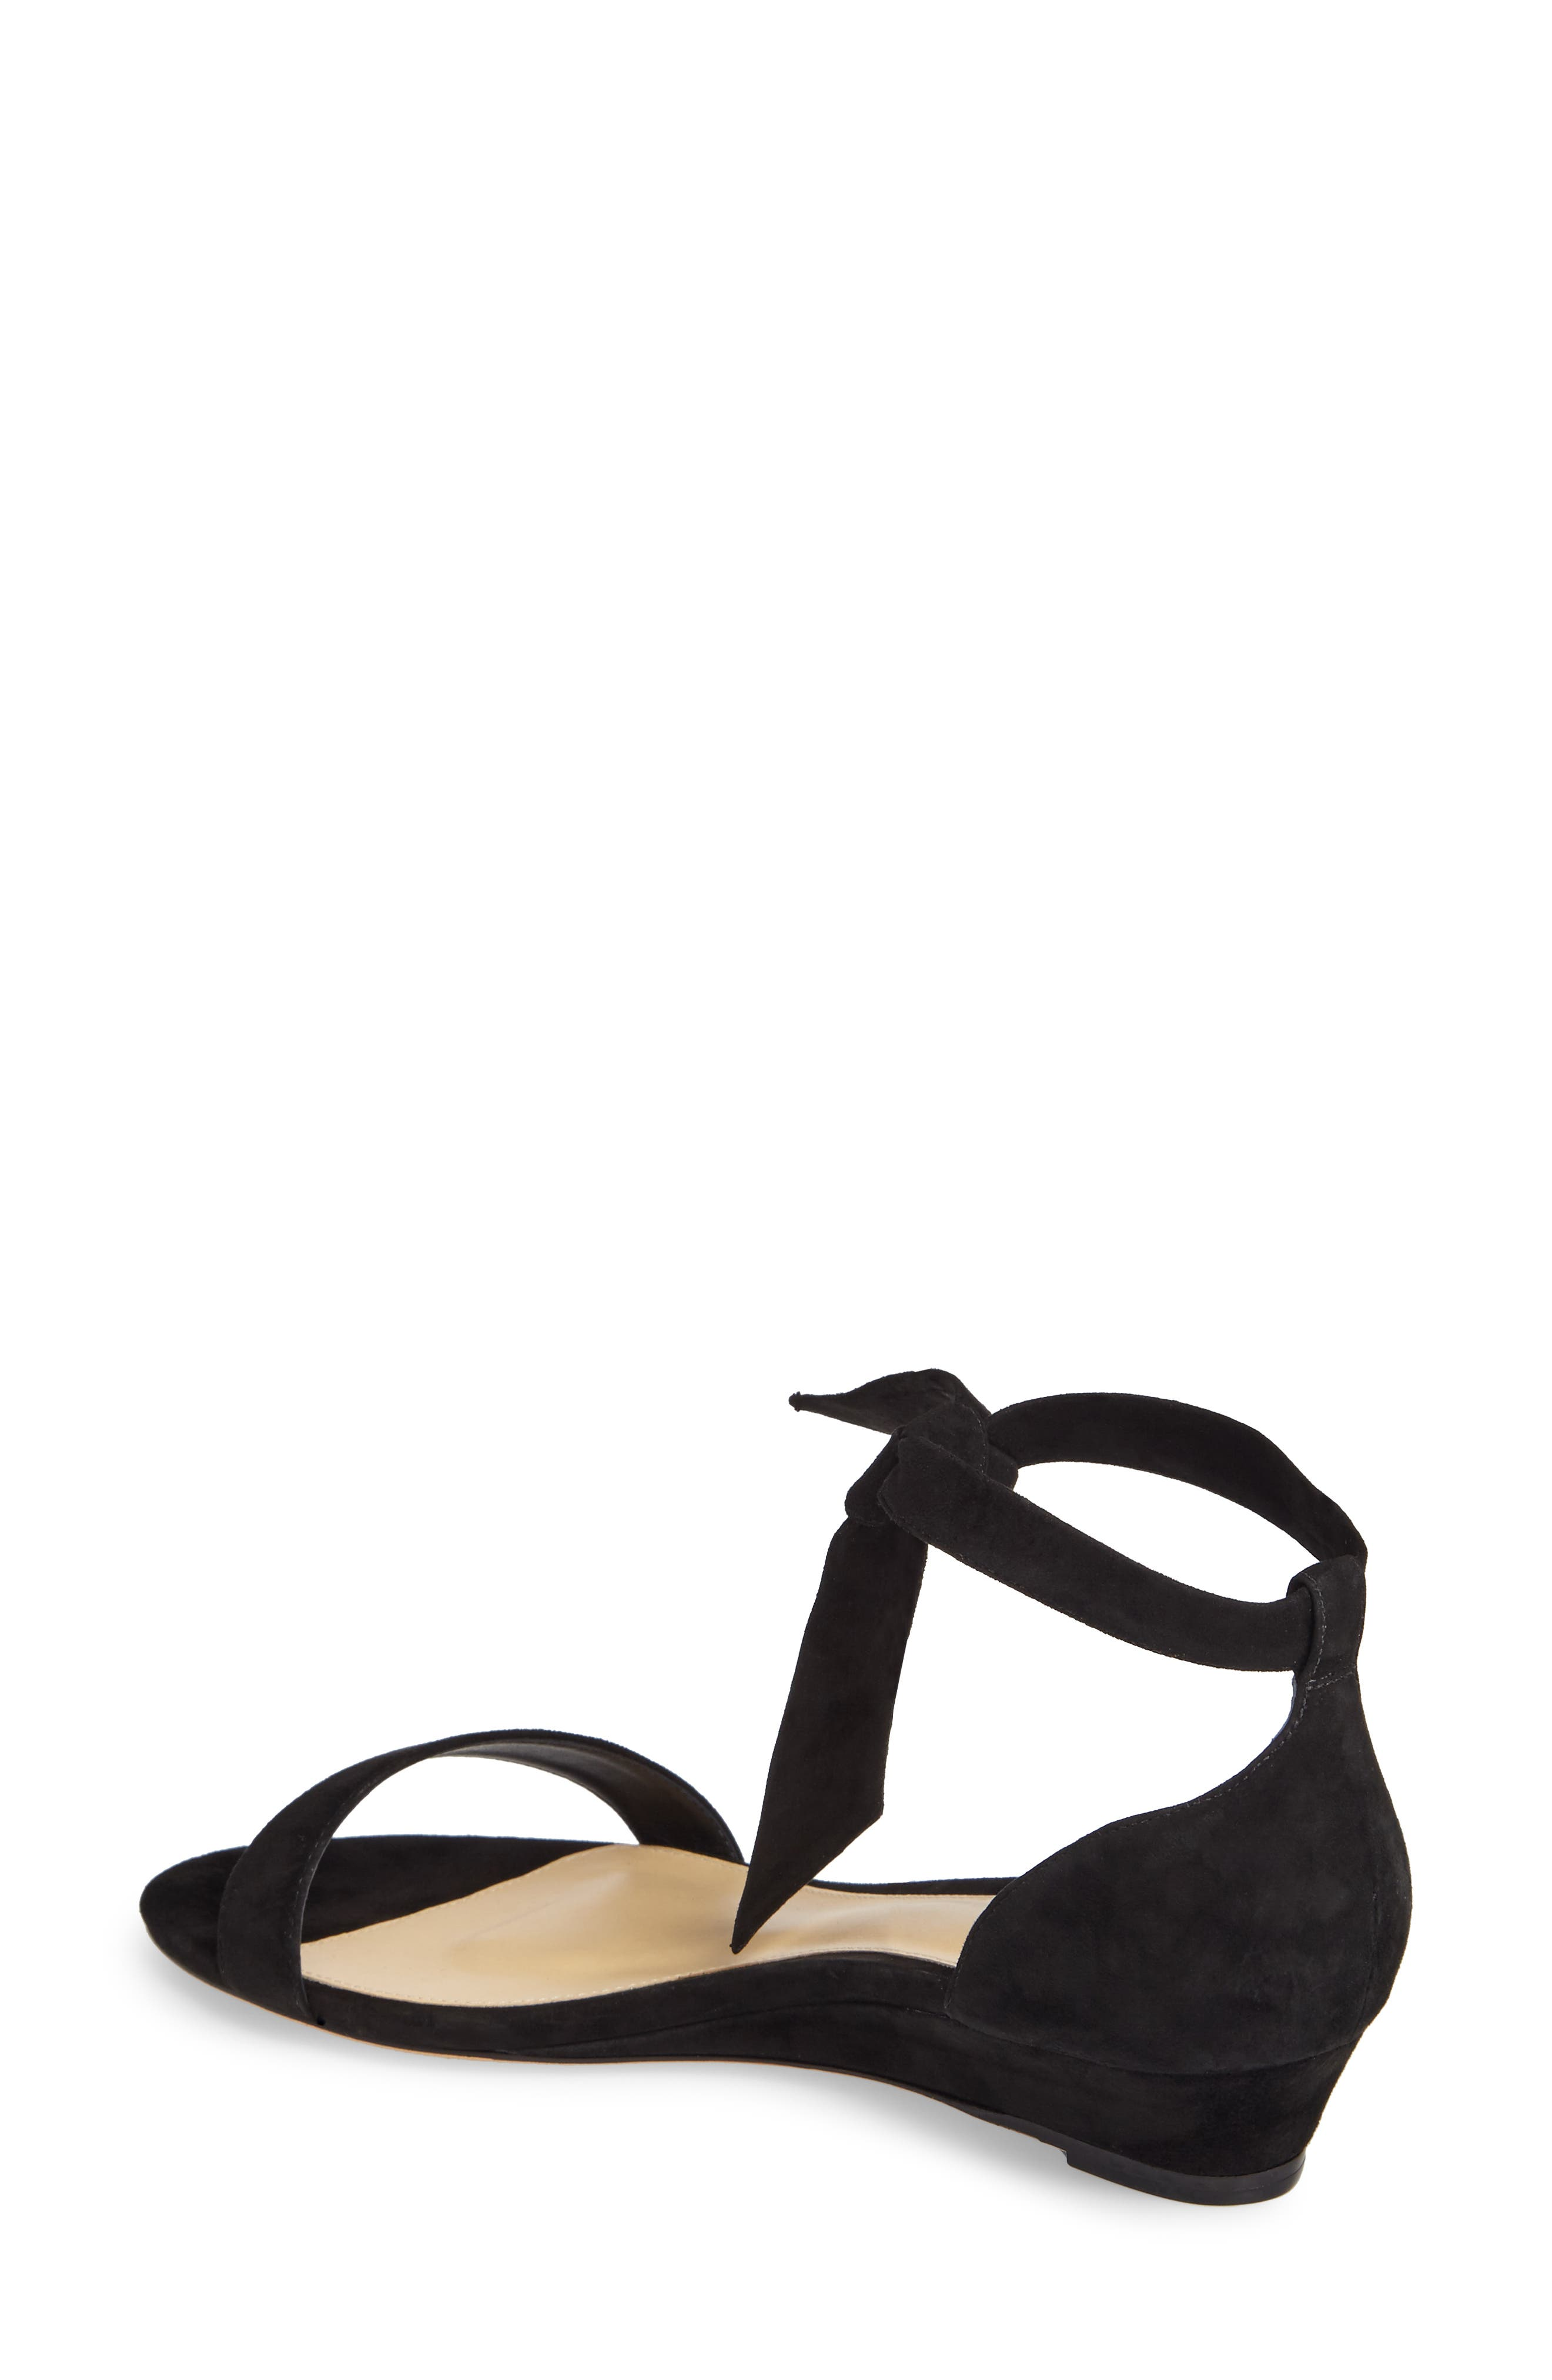 Atena Tie Strap Wedge Sandal,                             Alternate thumbnail 2, color,                             Black Suede